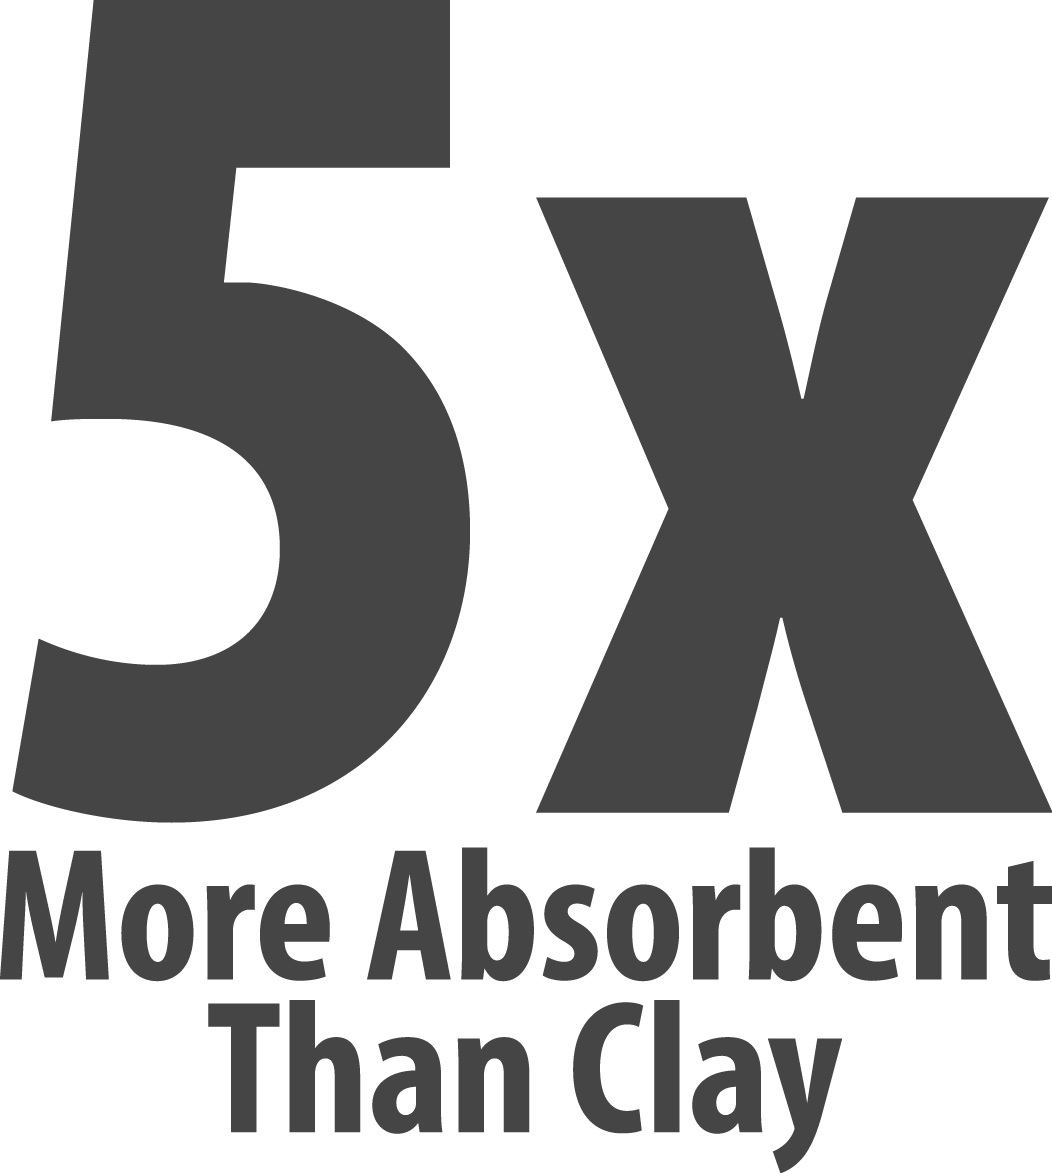 4 Time More Absorbent Than Clay Image